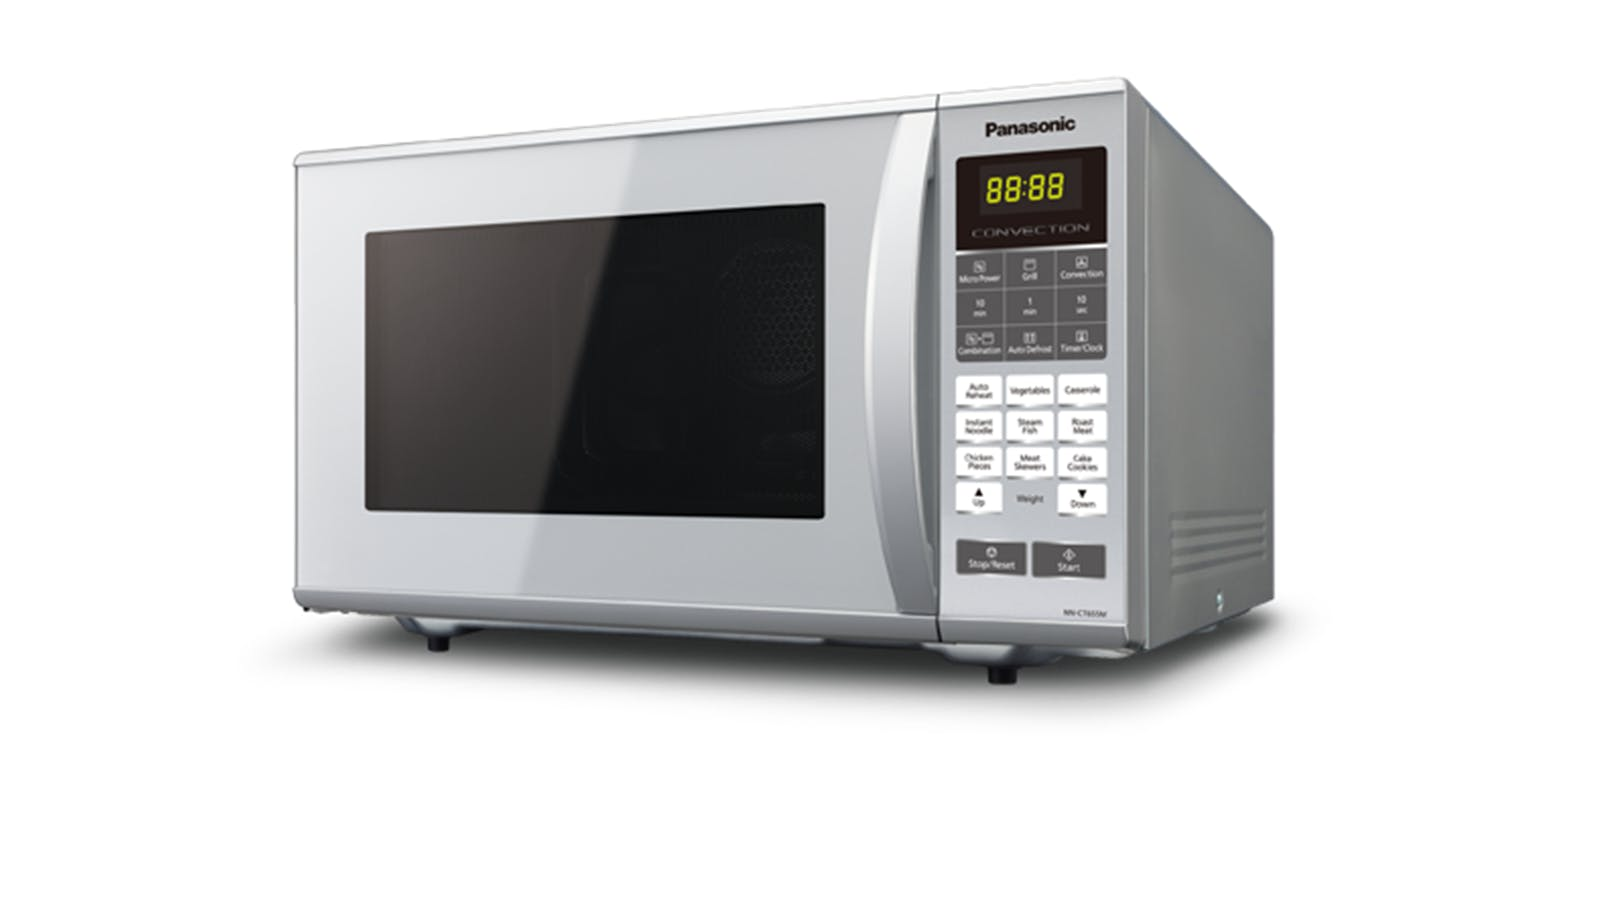 Panasonic NN CT655 27L Microwave Grill Oven